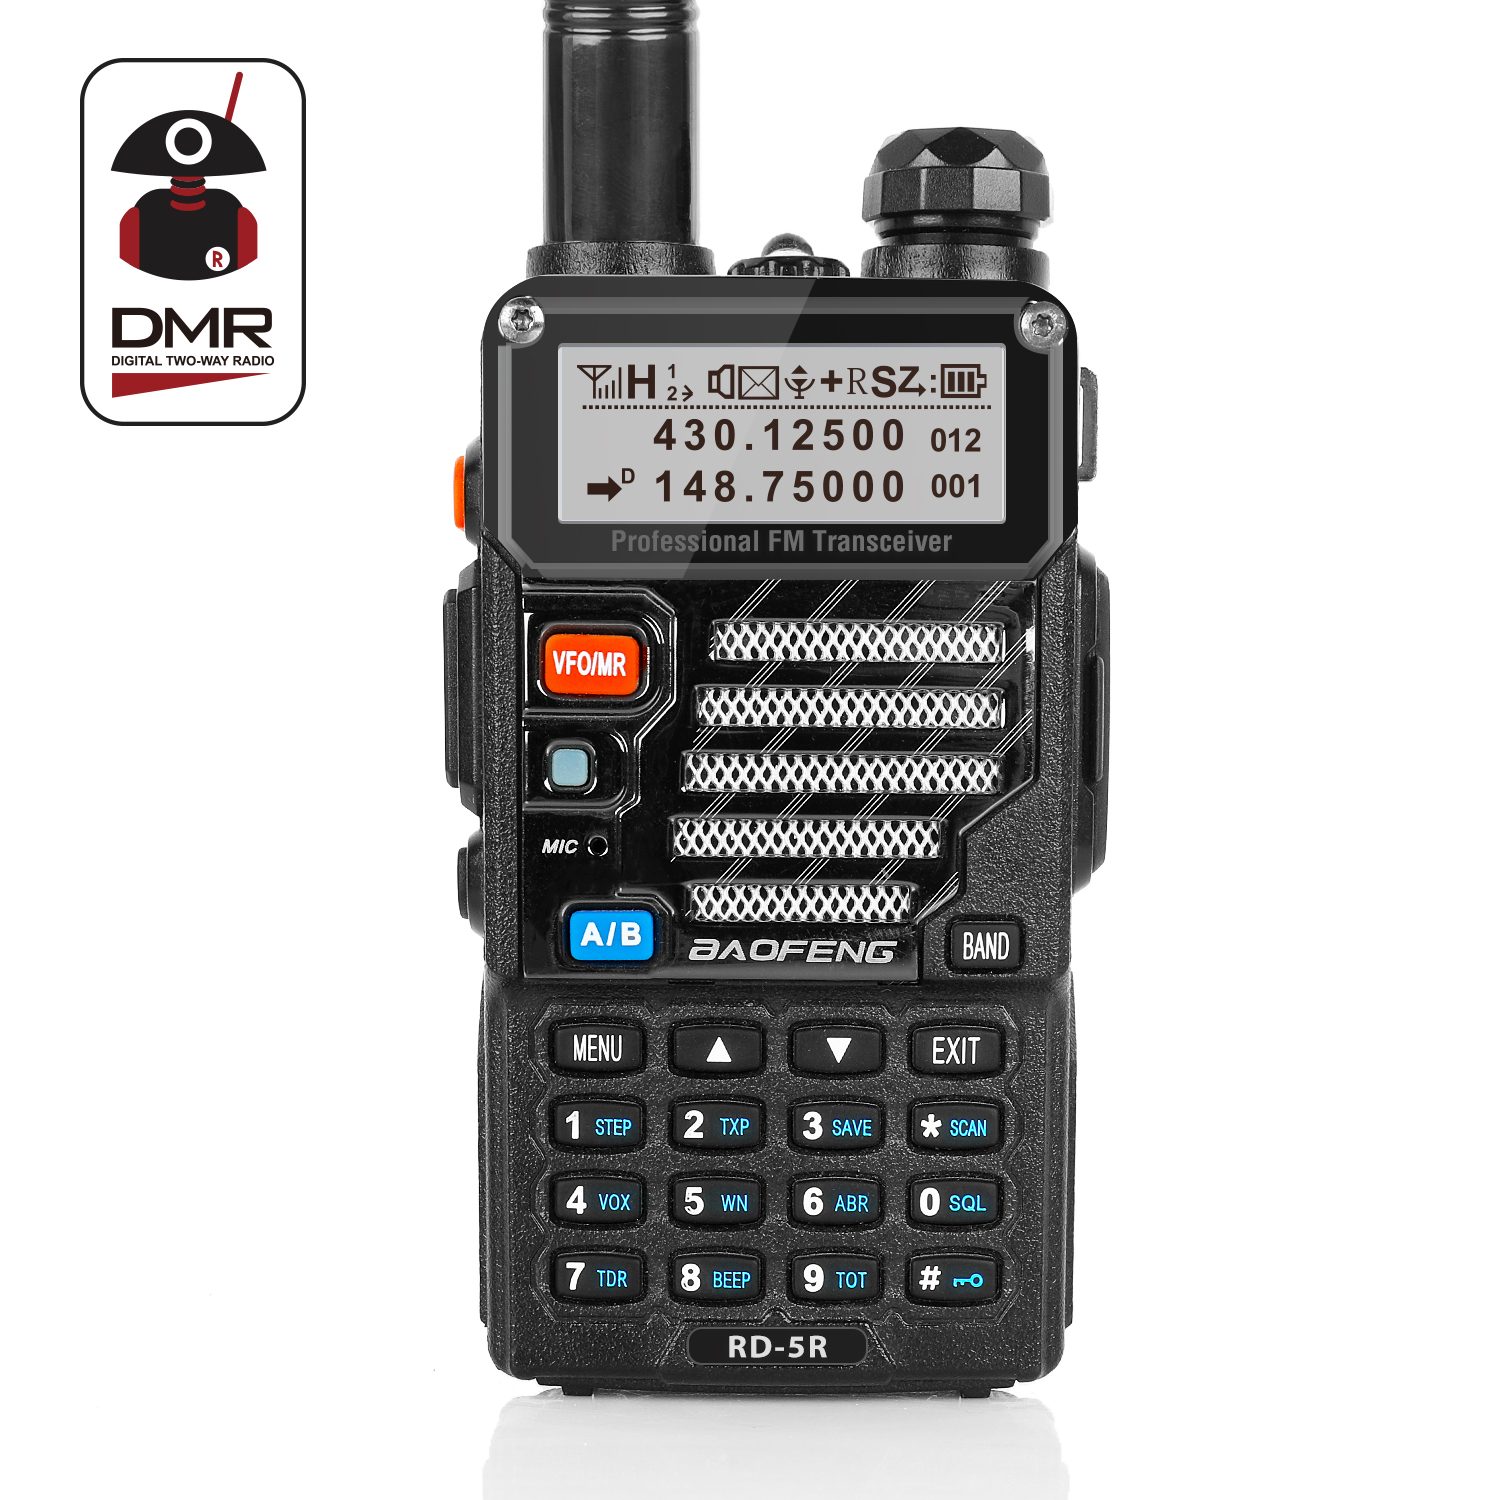 Details about Baofeng RD-5R DMR Dual Band VFO Digital V/UHF Two way Radio  Transceiver US Ship